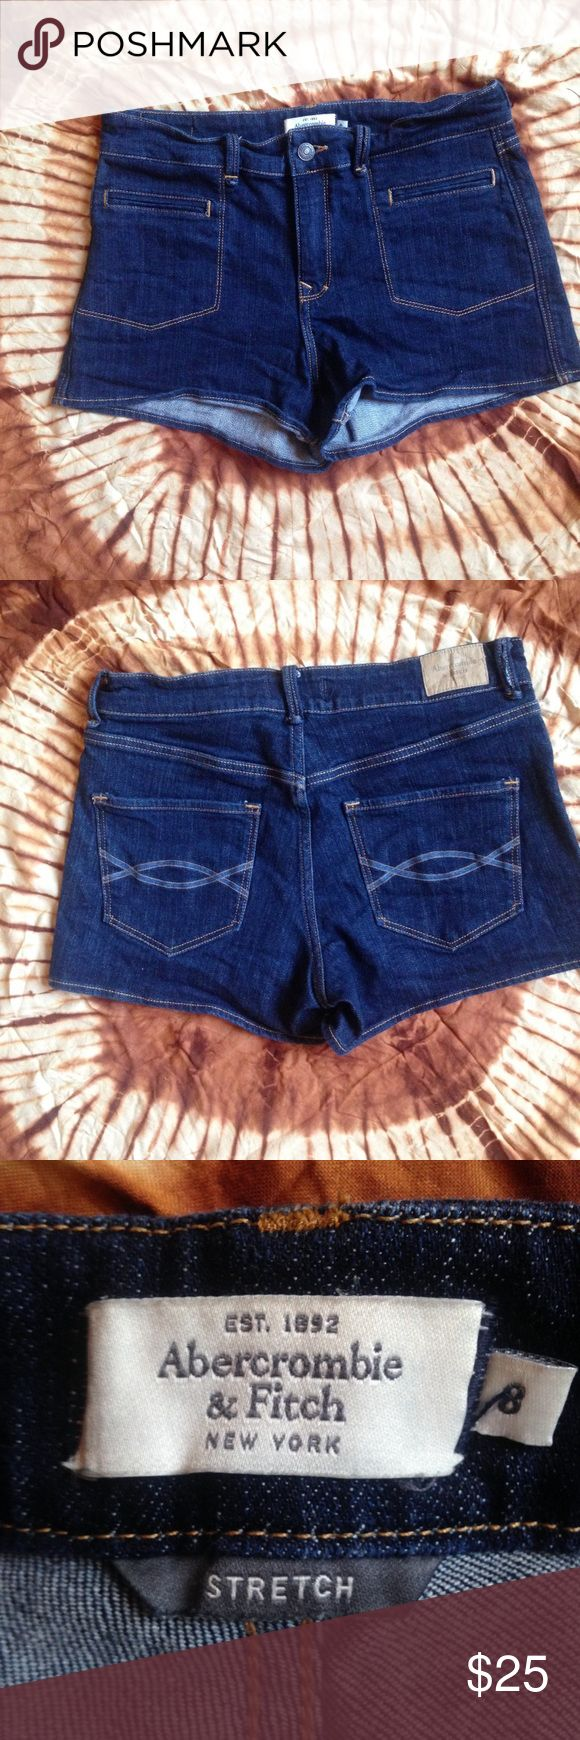 Abercrombie & Fitch Booty Jean Shorts, Dark Denim Adorable shorts from Abercrombie. Dark denim with brown stitching gives these a retro look. Size 8, Stretch. Abercrombie & Fitch Shorts Jean Shorts